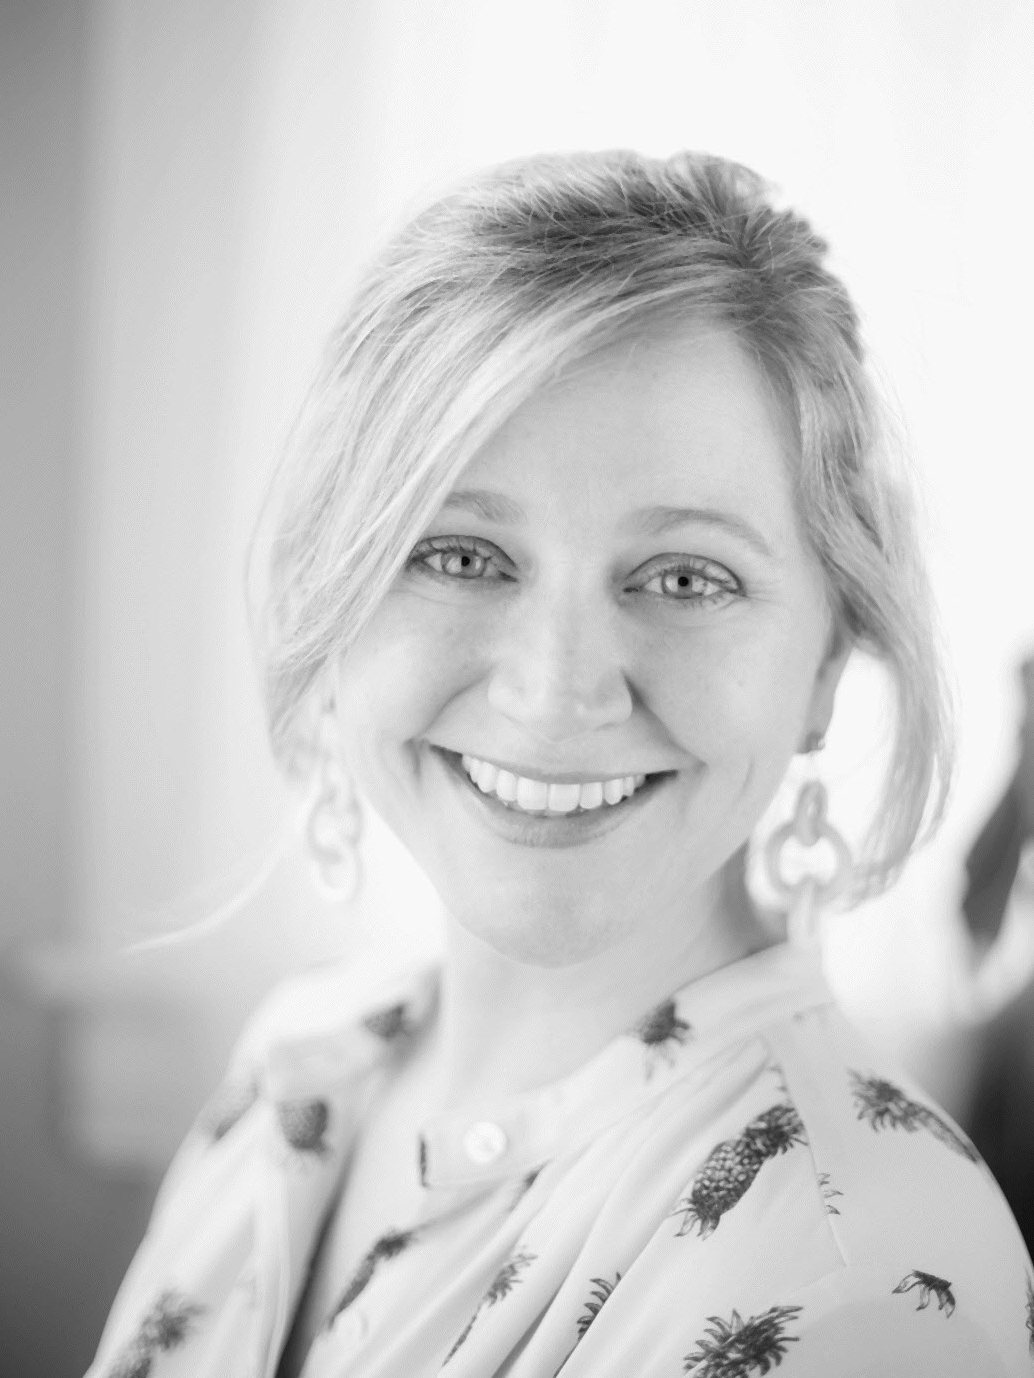 Meagan Hodge - Meagan's a Certified Interior Designer with 12+ years in the industry. As a sustainable living advocate, she loves assisting clients in occupant health, wellness and happiness in their spaces. Meagan spends free time traveling, motorcycling & laughing with family.